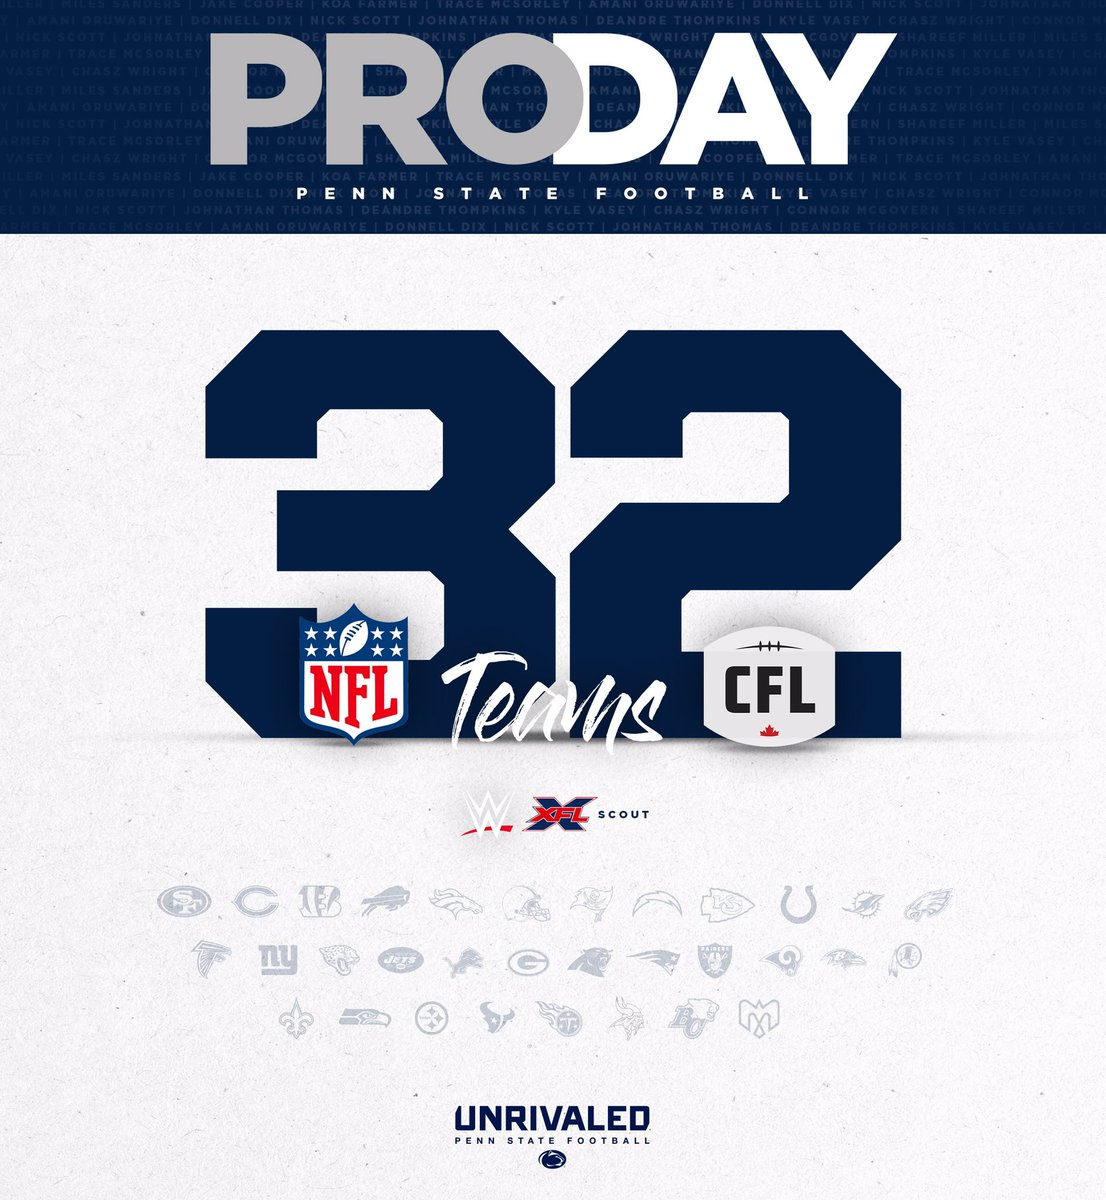 WWE Was Scouting Penn State Players At Pro Day